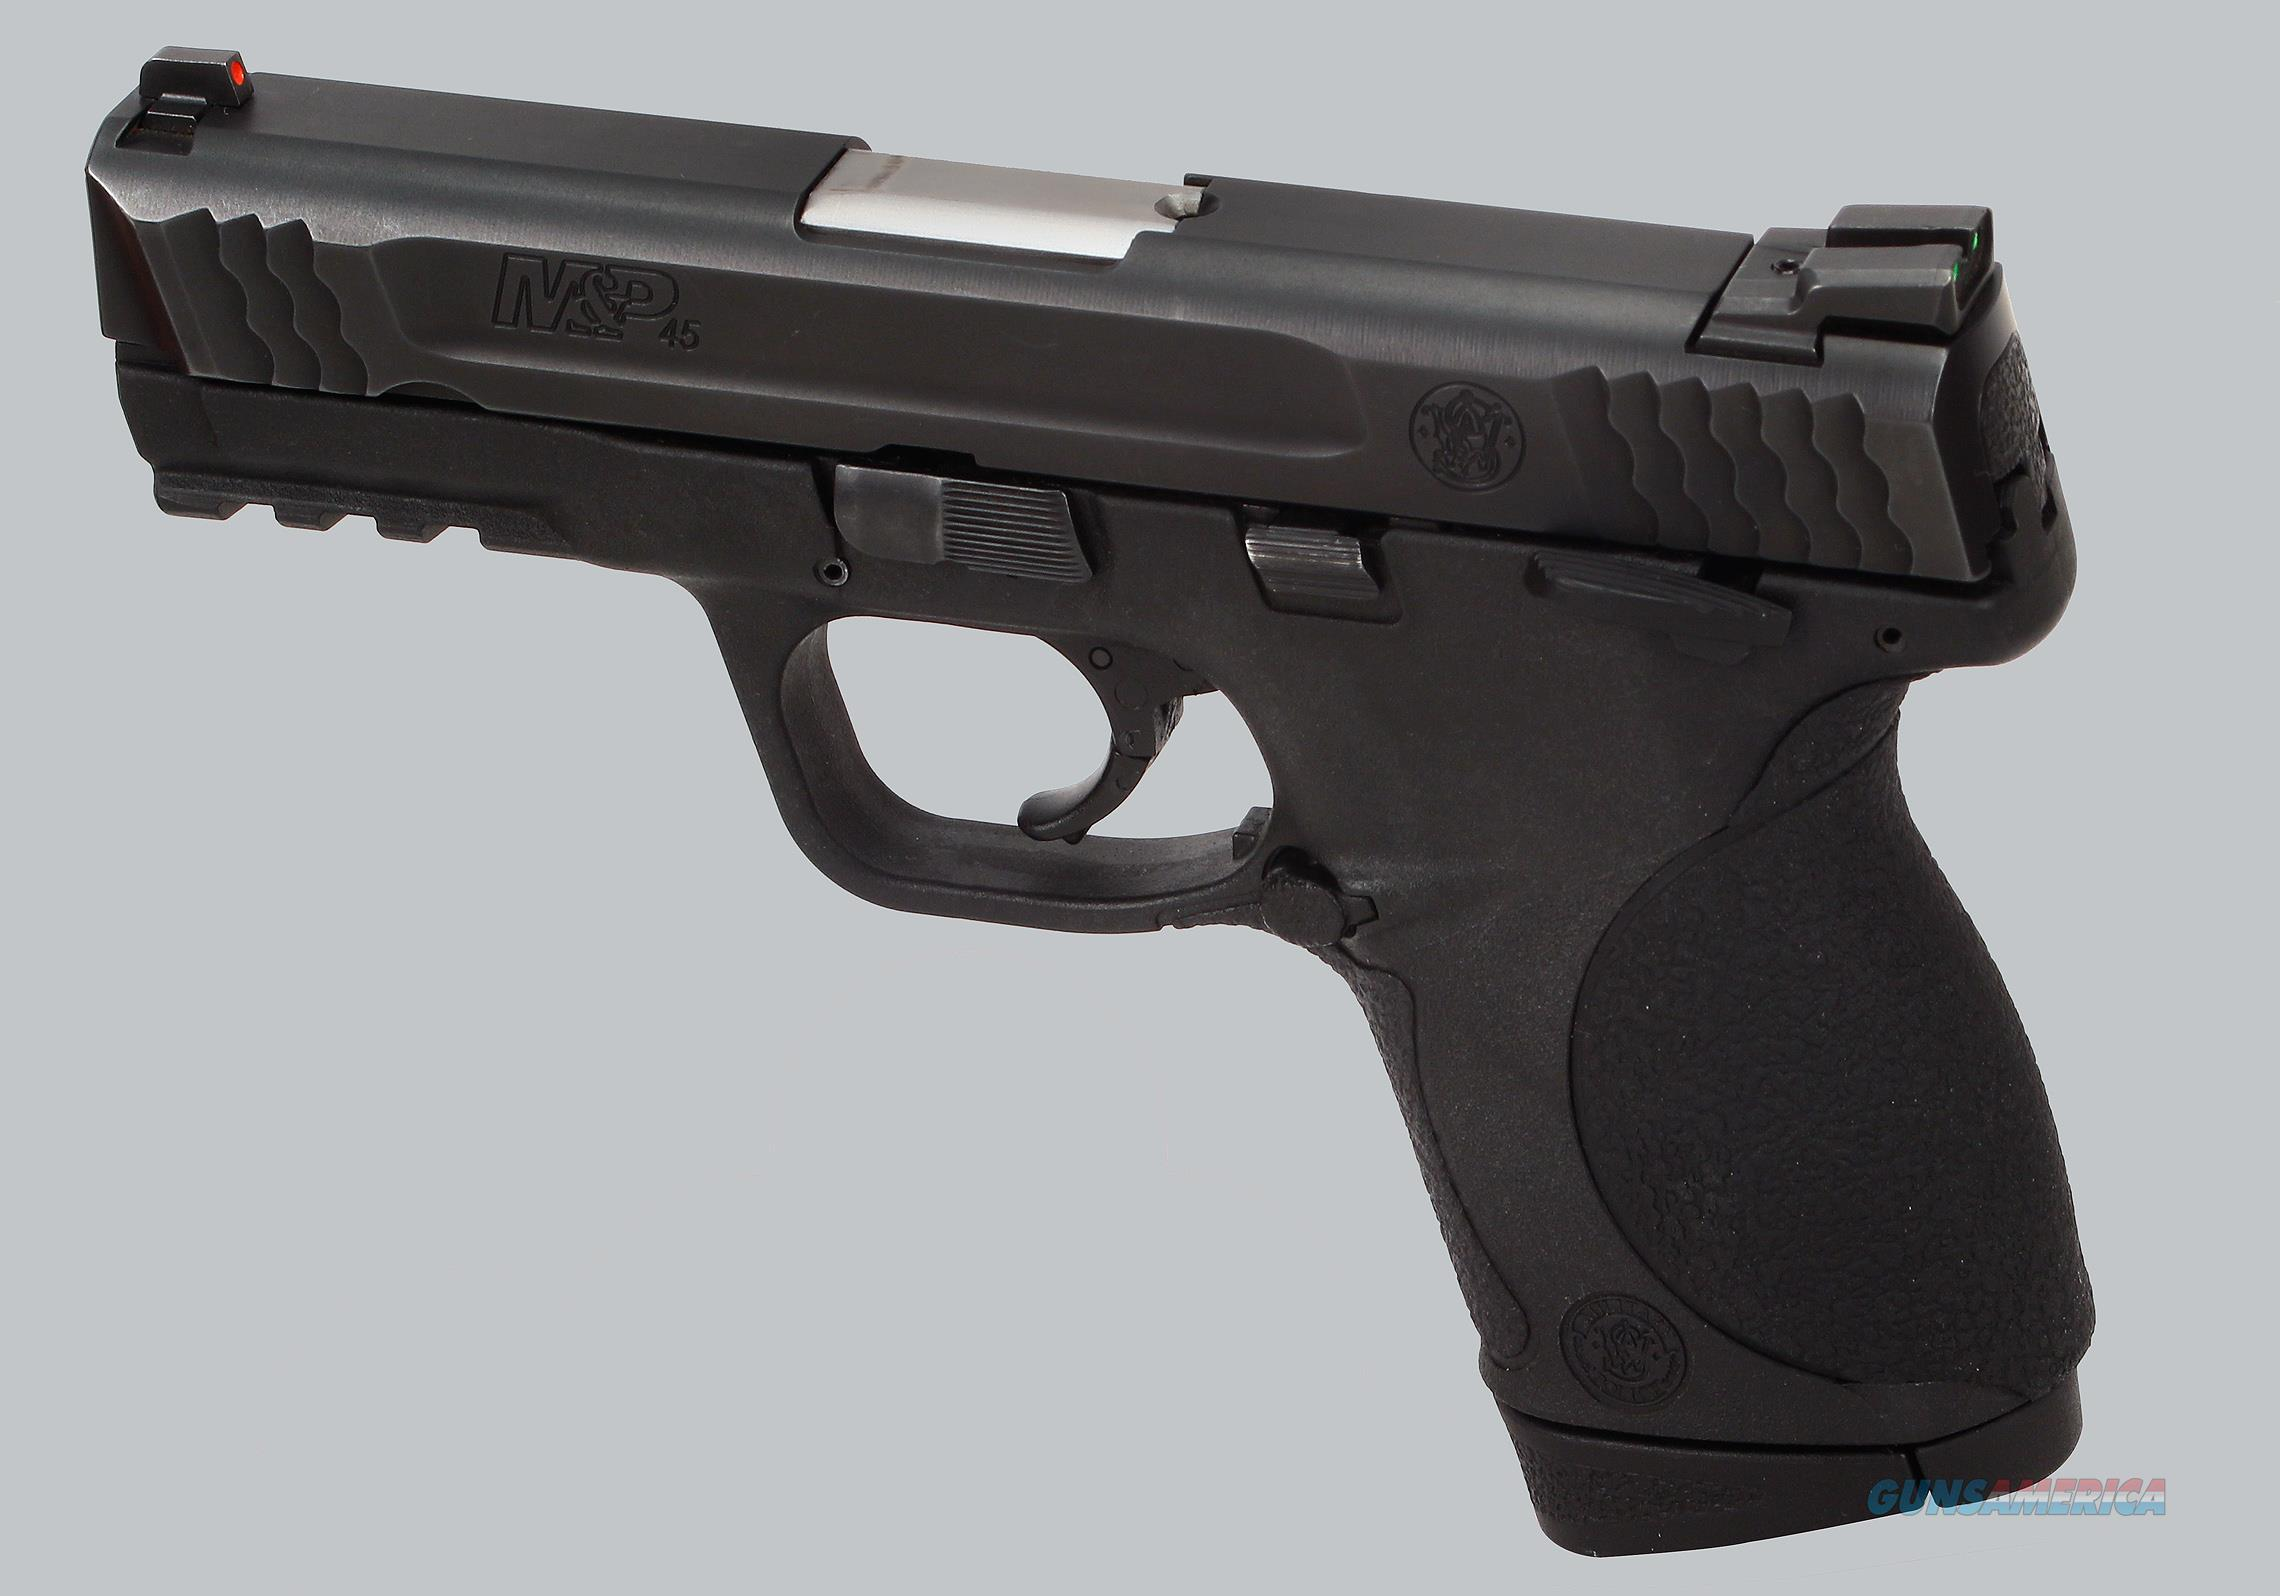 Smith & Wesson 45acp M&P Pistol  Guns > Pistols > Smith & Wesson Pistols - Autos > Polymer Frame